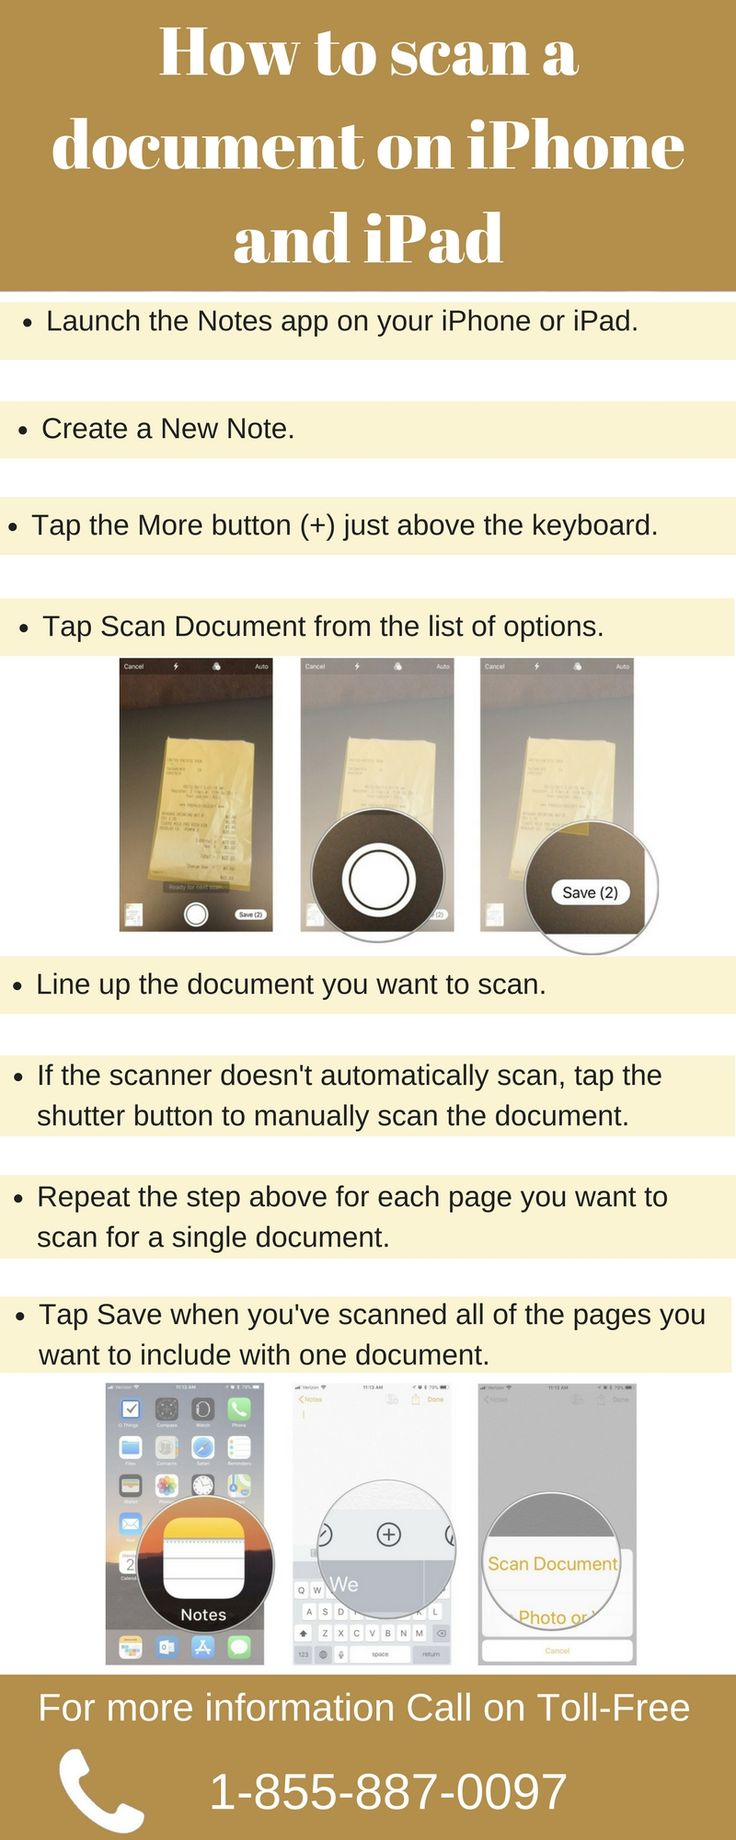 How to scan a document on iPhone and iPad?  1.Launch the Notes app on your iPhone or iPad.  2.Create a New Note.  3.Tap the More button (+) just above the keyboard. 4.Tap Scan Document from the list of options. 5.Line up the document you want to scan.  6.If the scanner doesn't automatically scan, tap the shutter button to manually scan the document.  7.Repeat the step above for each page you want to scan for a single document. 8.Tap Save when you've scanned all of the pages you want to…